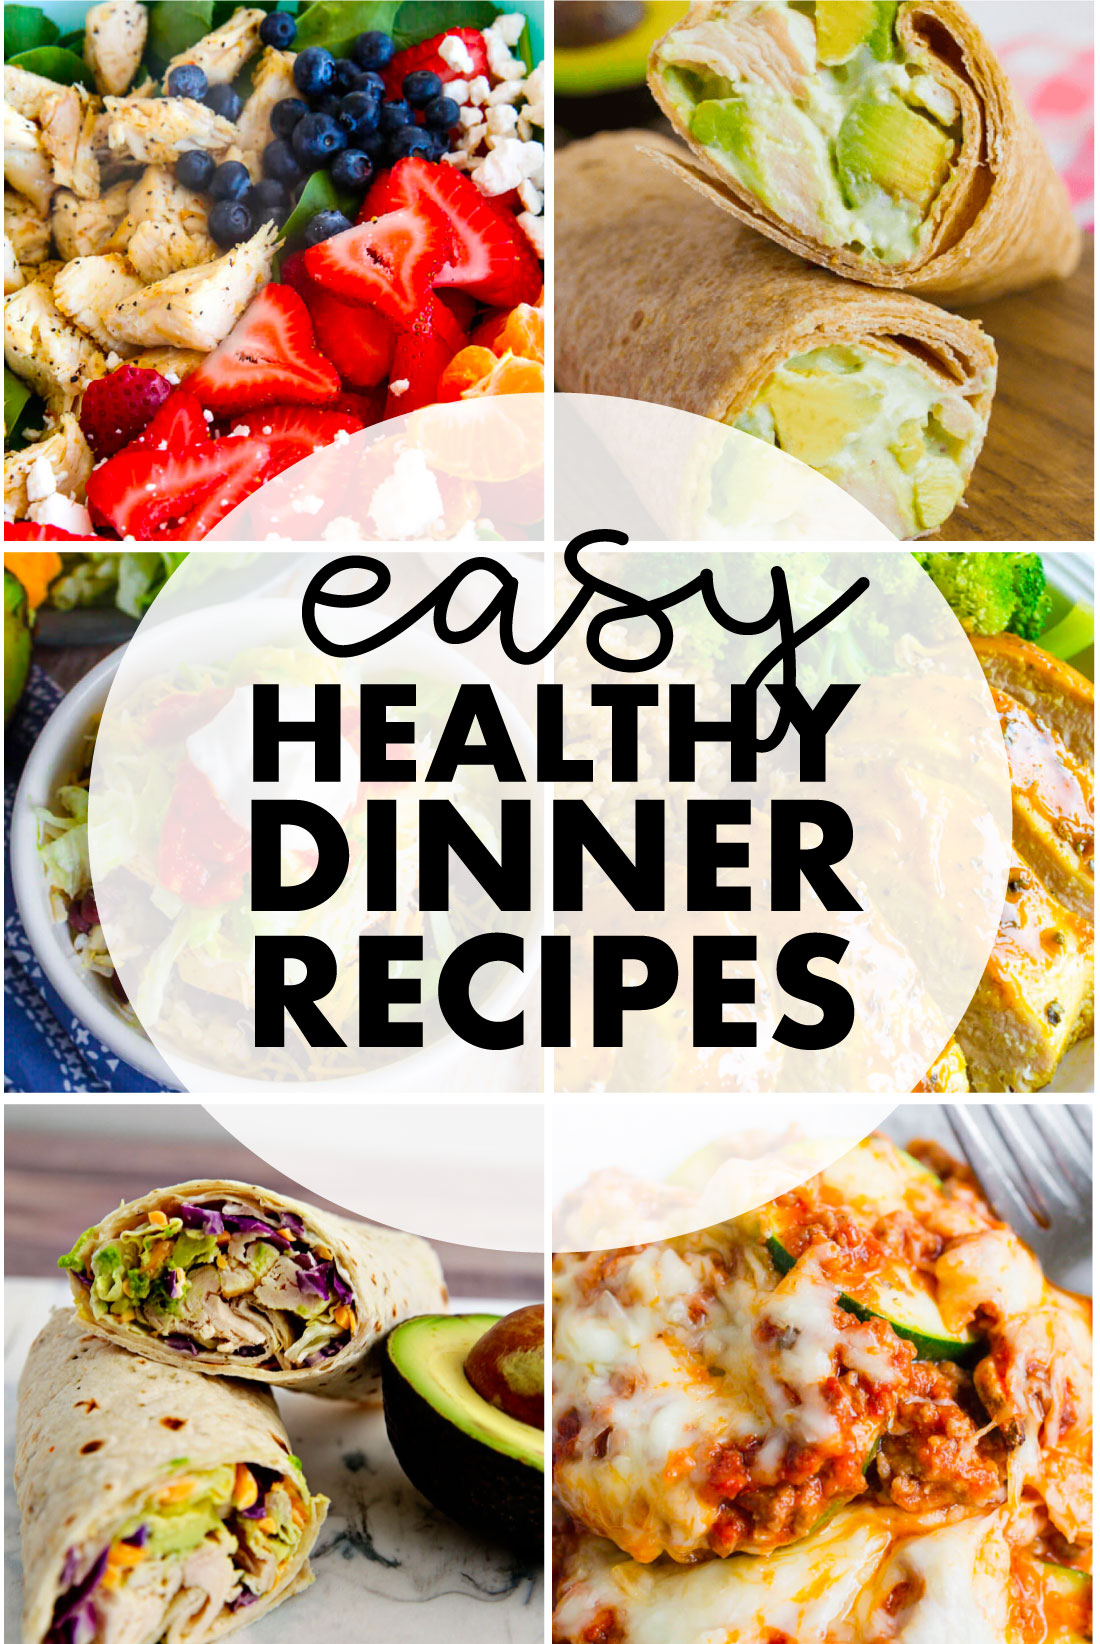 Easy Healthy Dinner Recipes - some of my favorites that are quick and taste good!